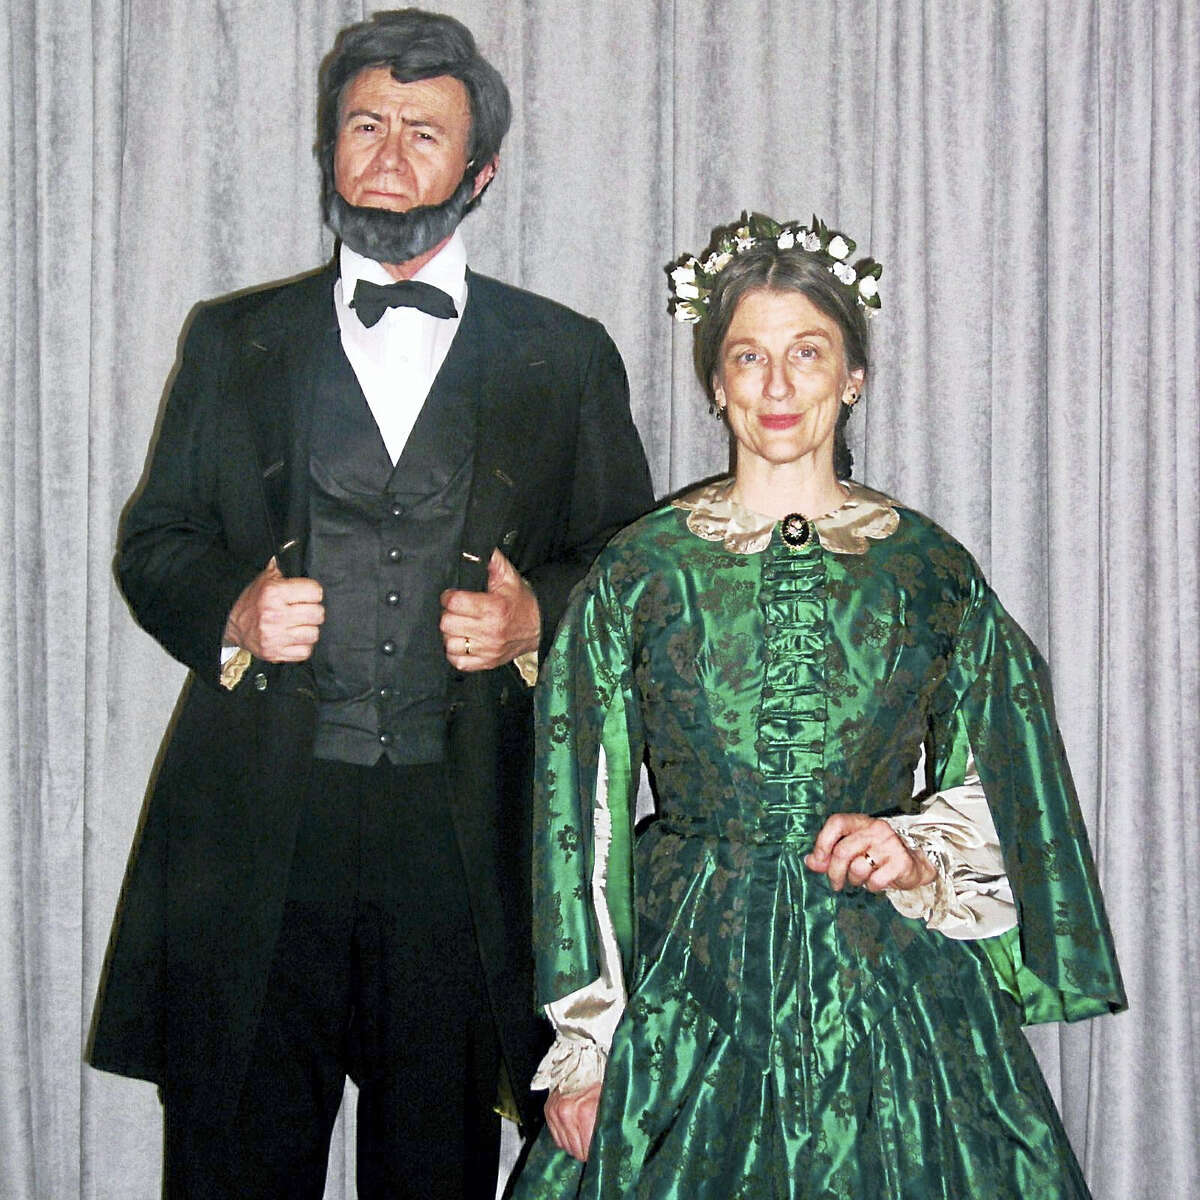 """Contributed photo Attached photos: William and Sue Wills will play the roles of Abraham and Mary Lincoln on July 21 during Chester Village West's free and open-to-the-public """"Presidents and First Ladies"""" performances at 10 a.m. and 2 p.m."""